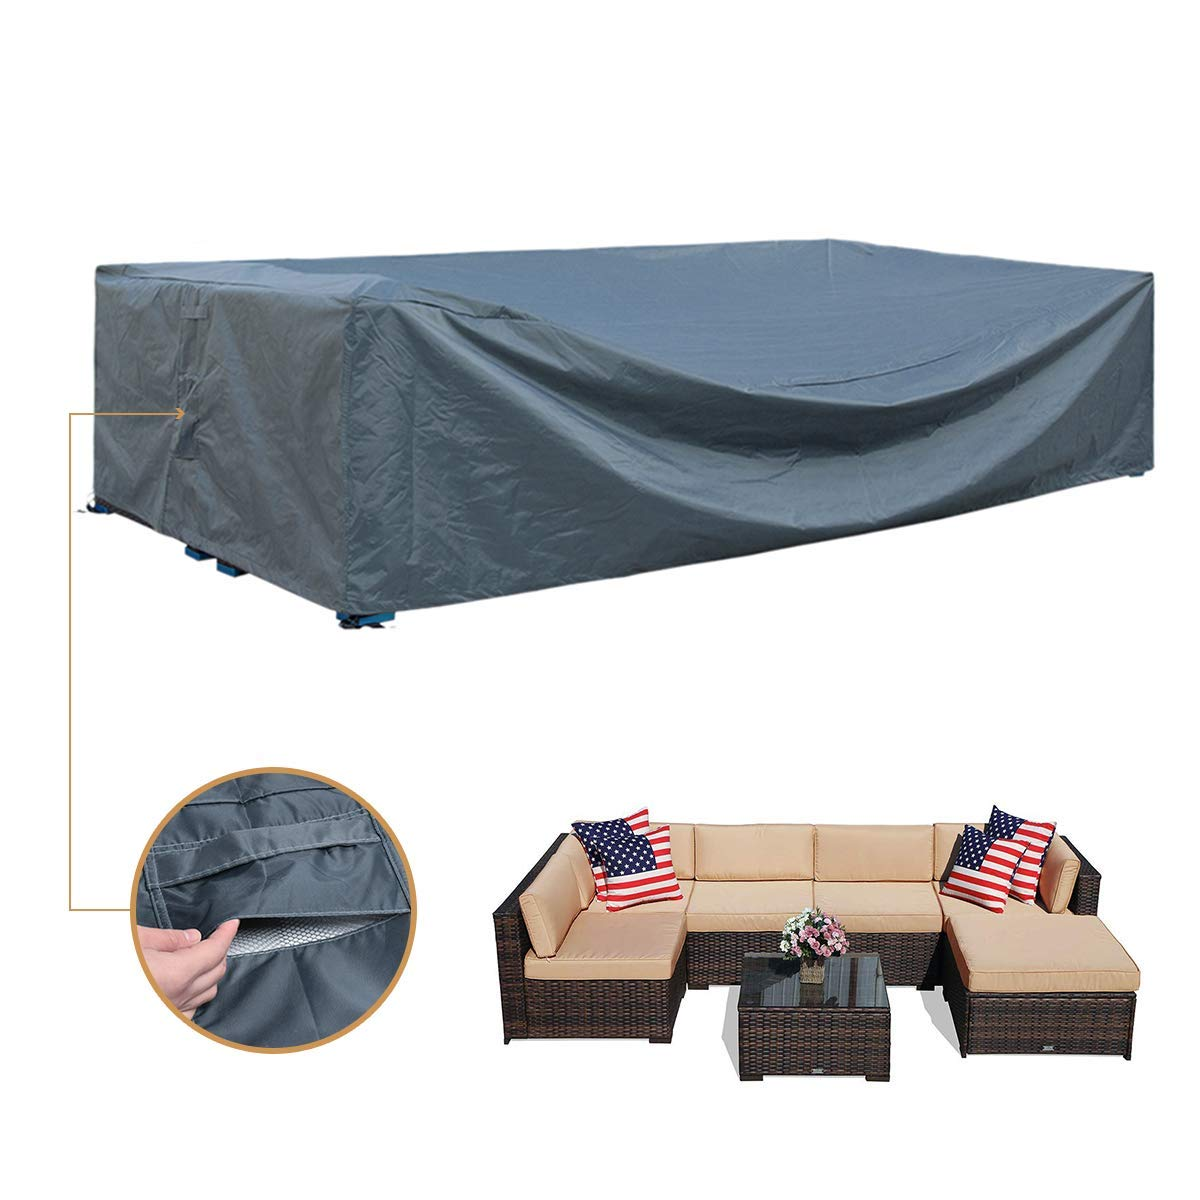 Mr.You Patio Cover,Patio Furniture Set Covers Waterproof Outdoor Furniture Lounge Porch Sofa Waterproof Dust Proof Protective Loveseat Covers